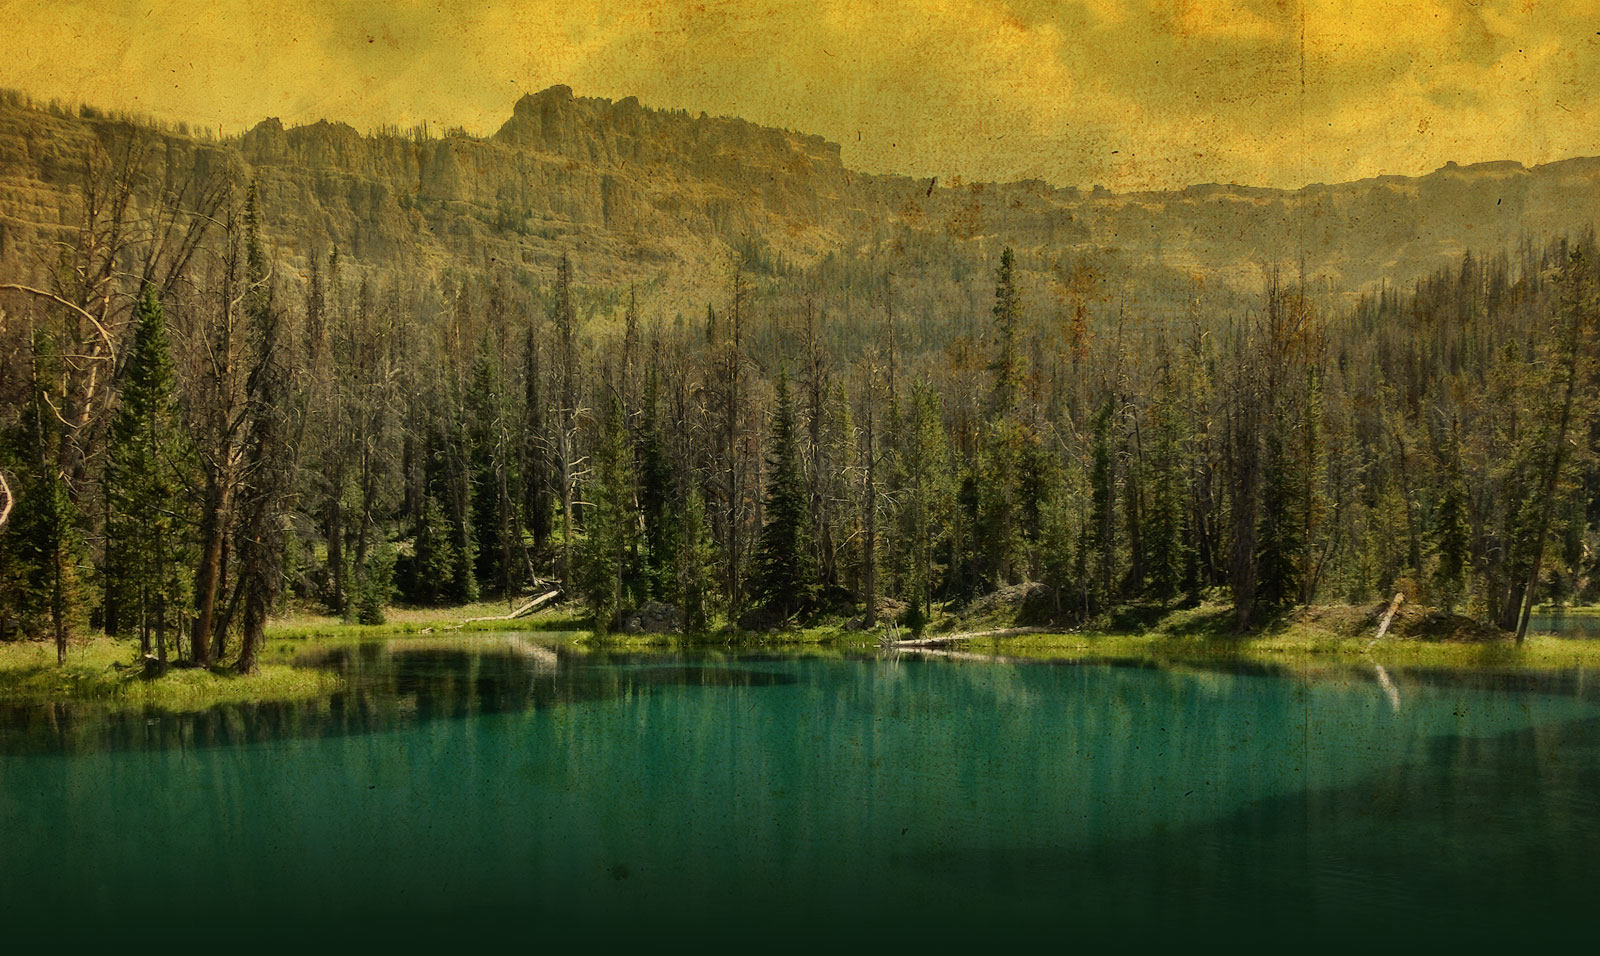 orvis-endorsed fly-fishing expedition | wyoming guide & outfitter, Fly Fishing Bait